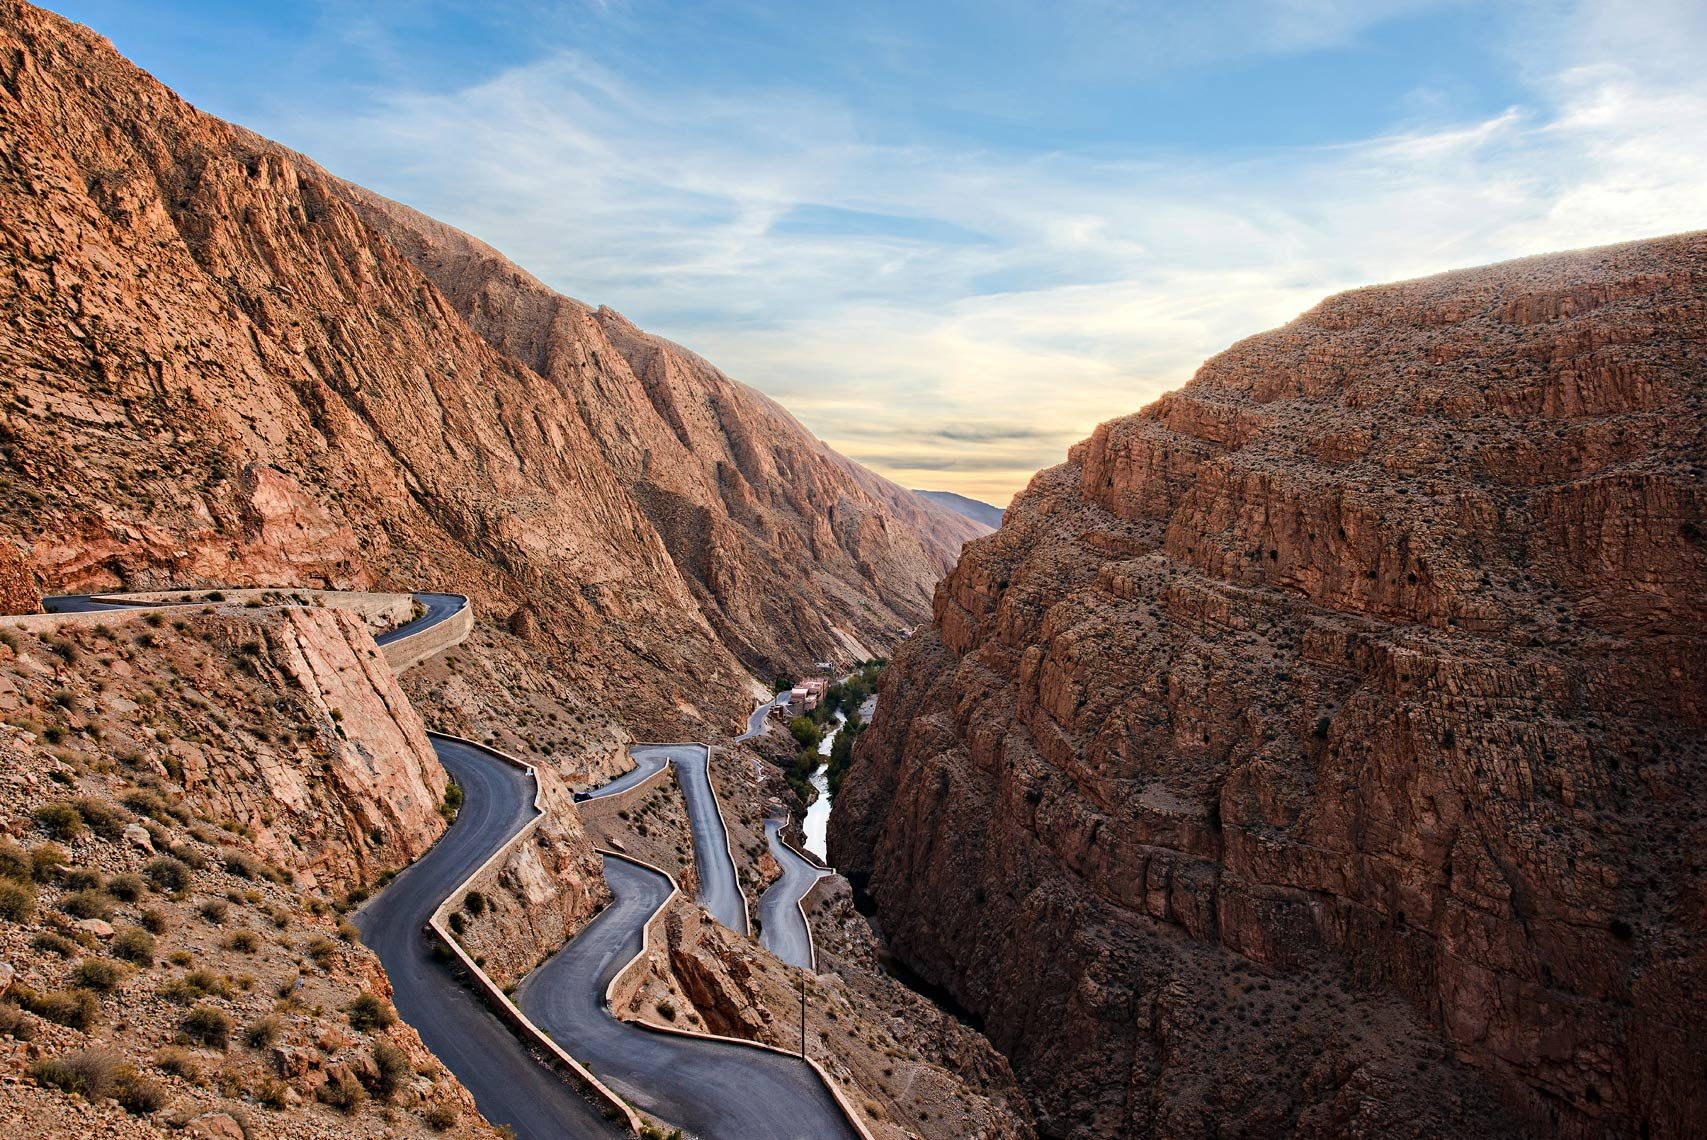 Dades Gorge in Morocco.